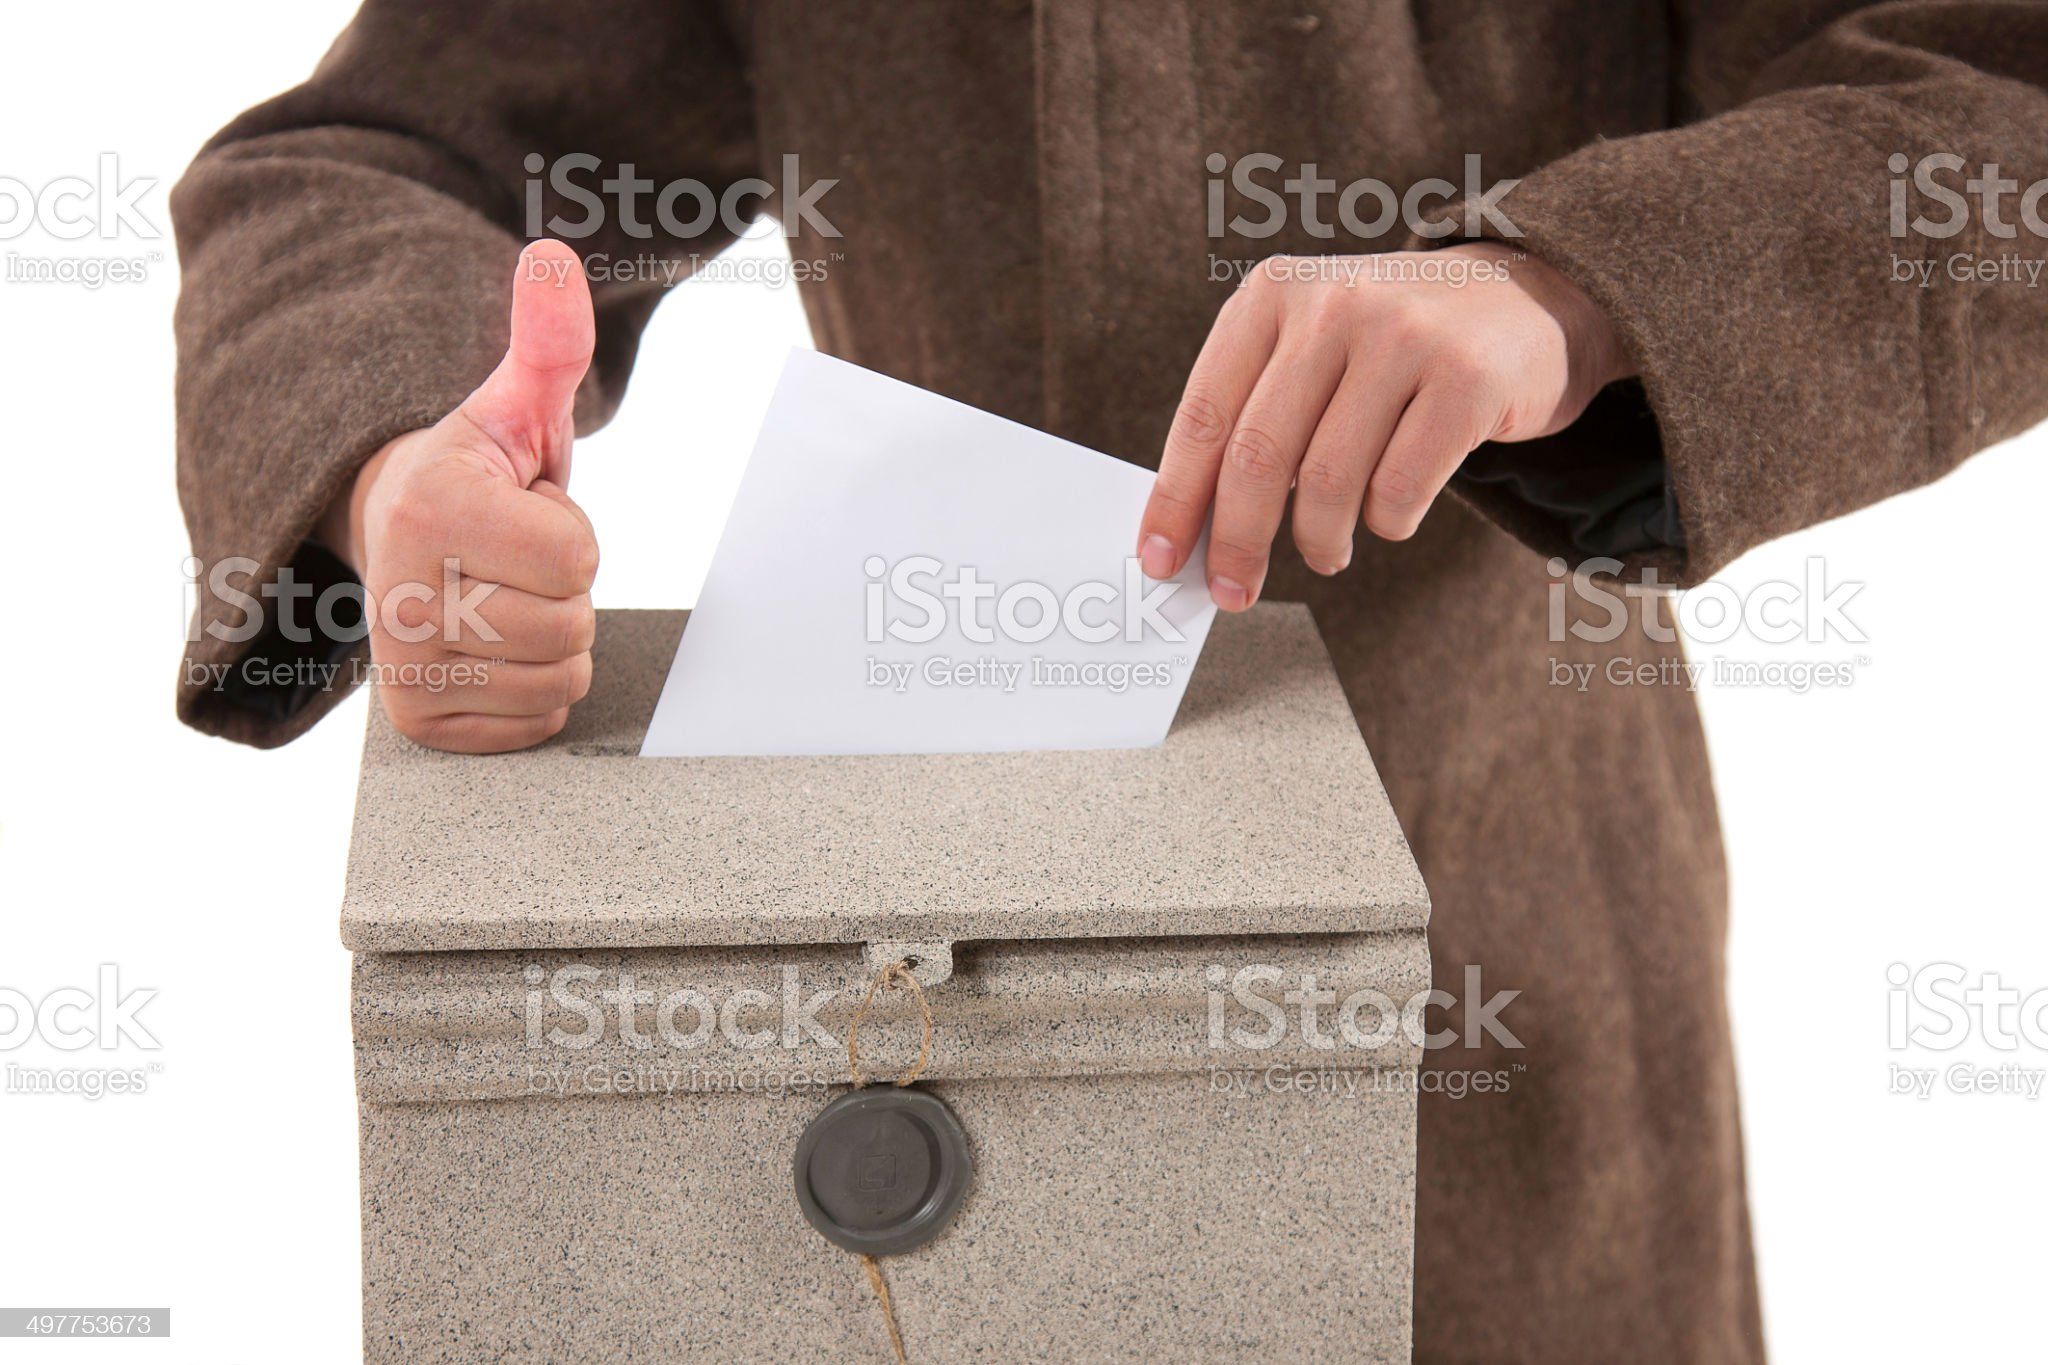 Man putting letter in mailbox,showing thumbs up gesture royalty-free stock photo